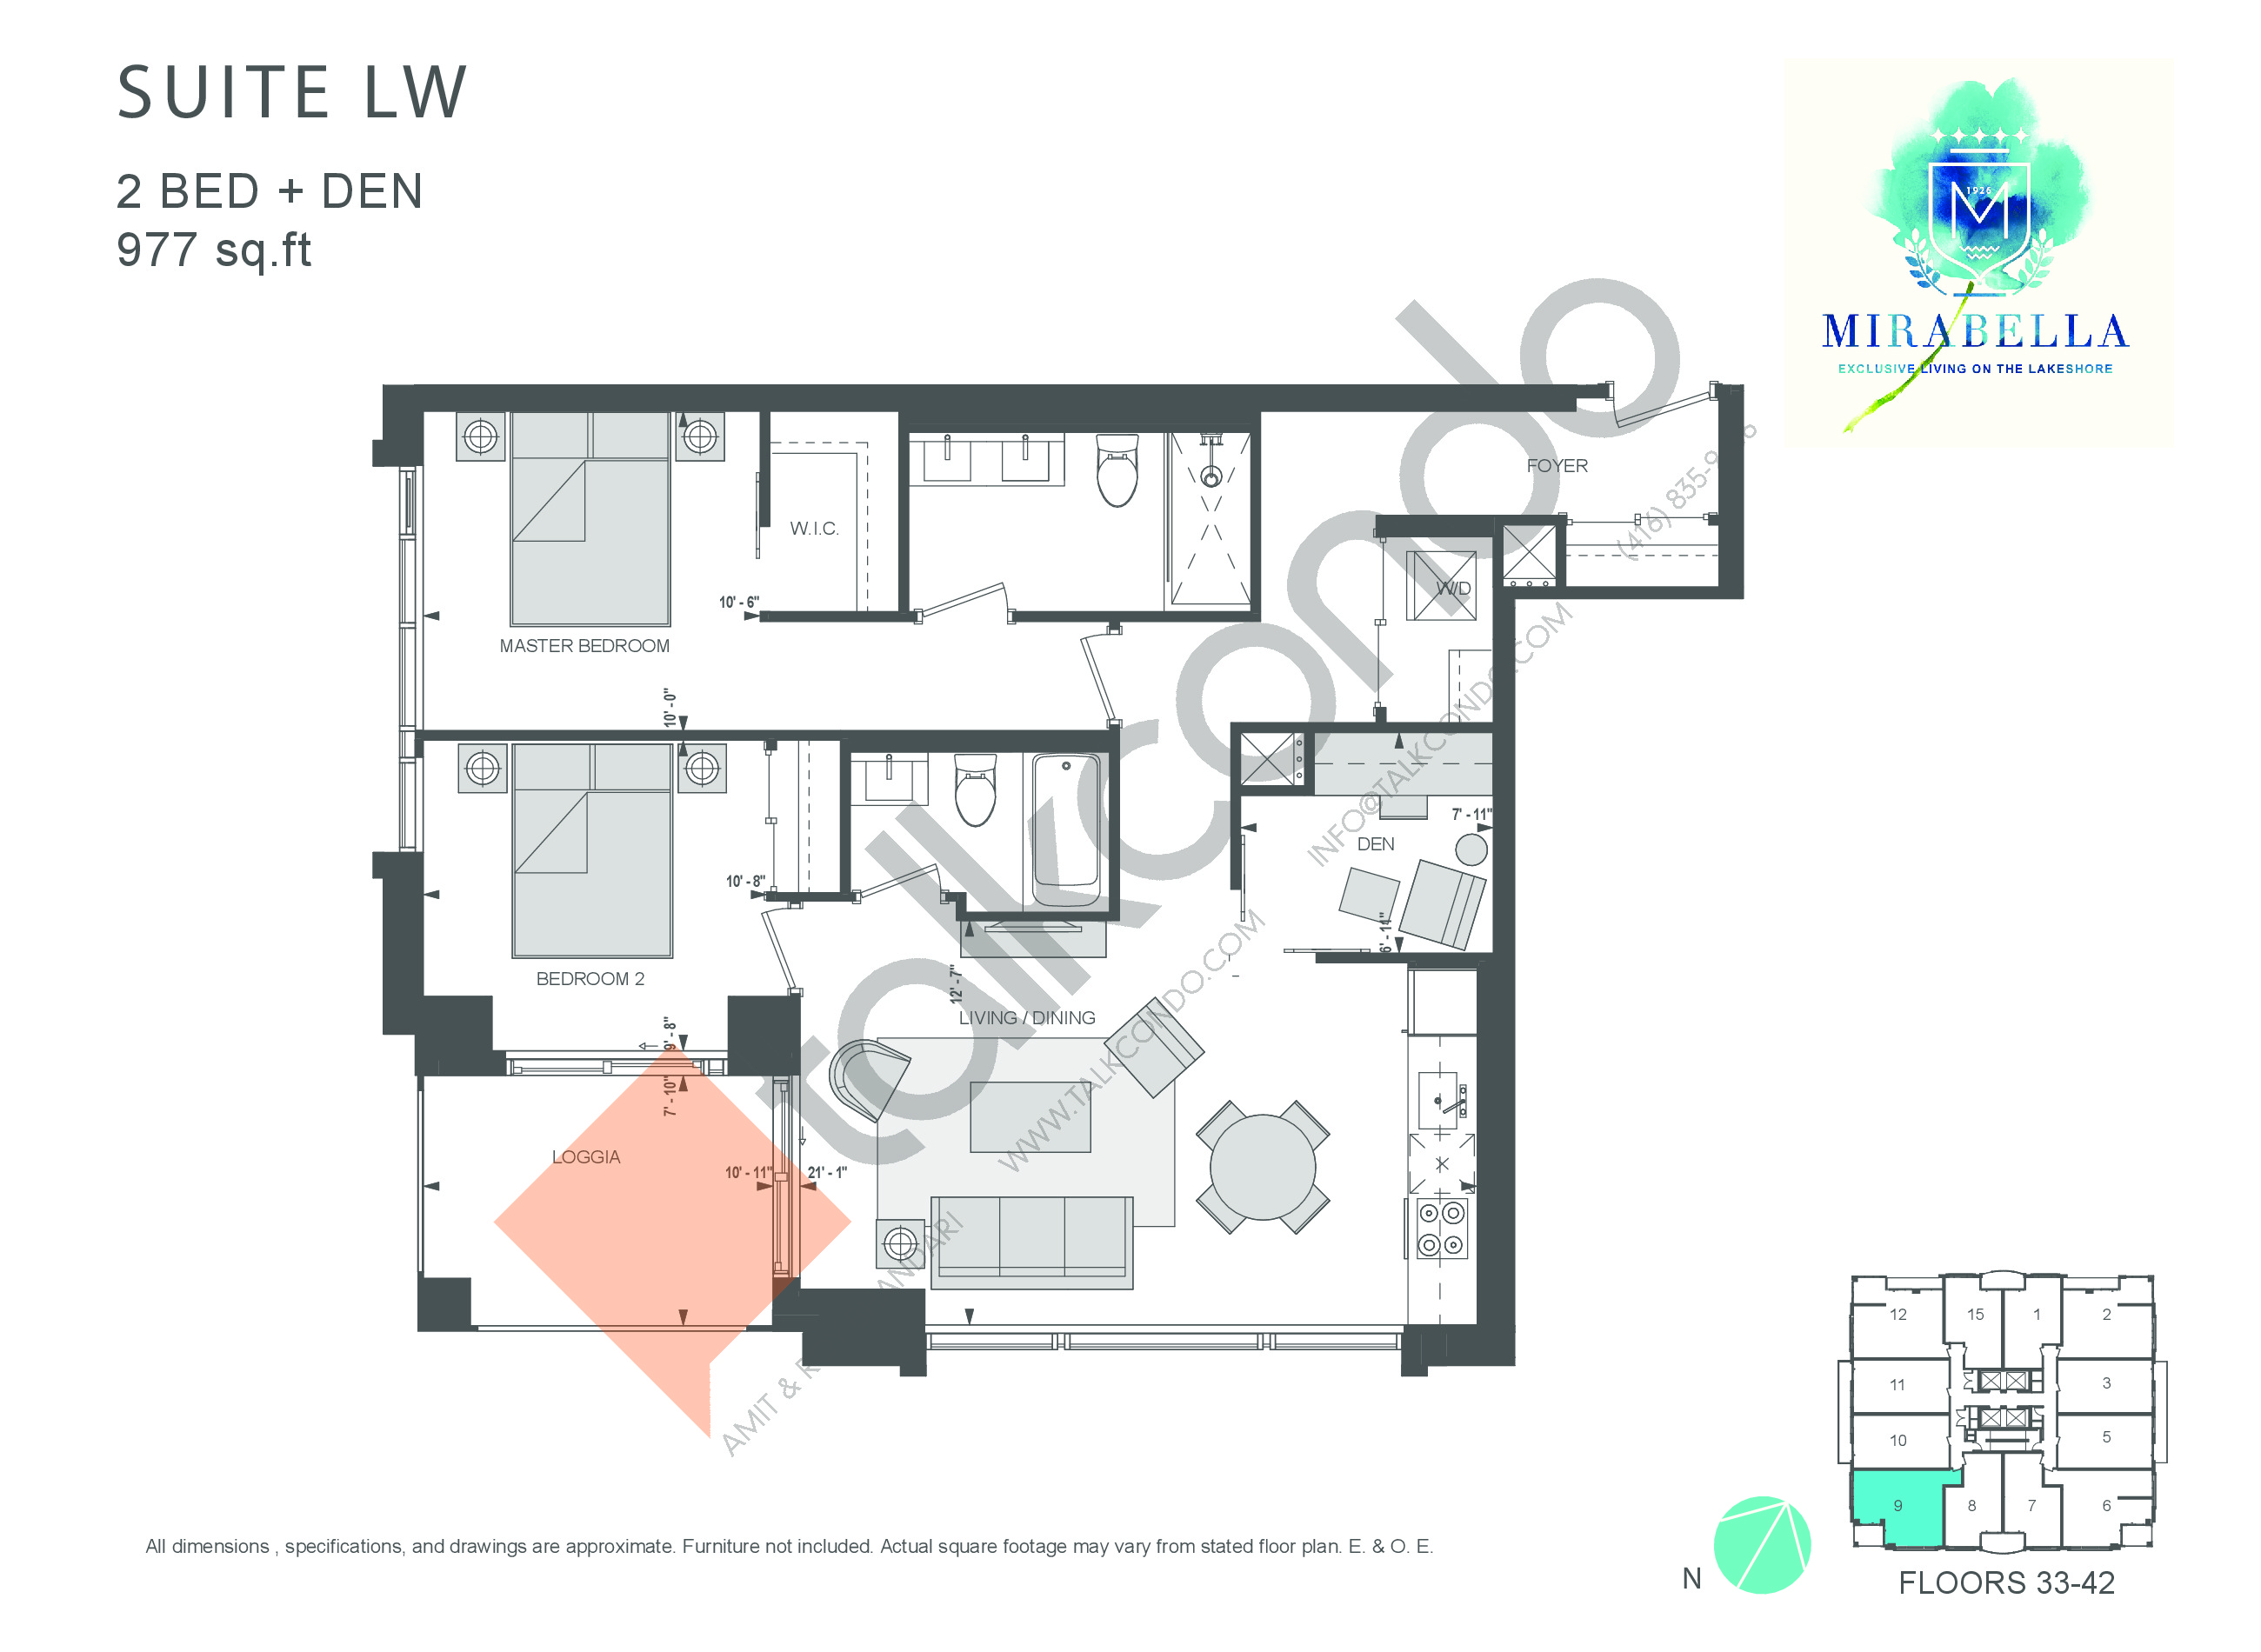 Suite LW Floor Plan at Mirabella Luxury Condos East Tower - 977 sq.ft